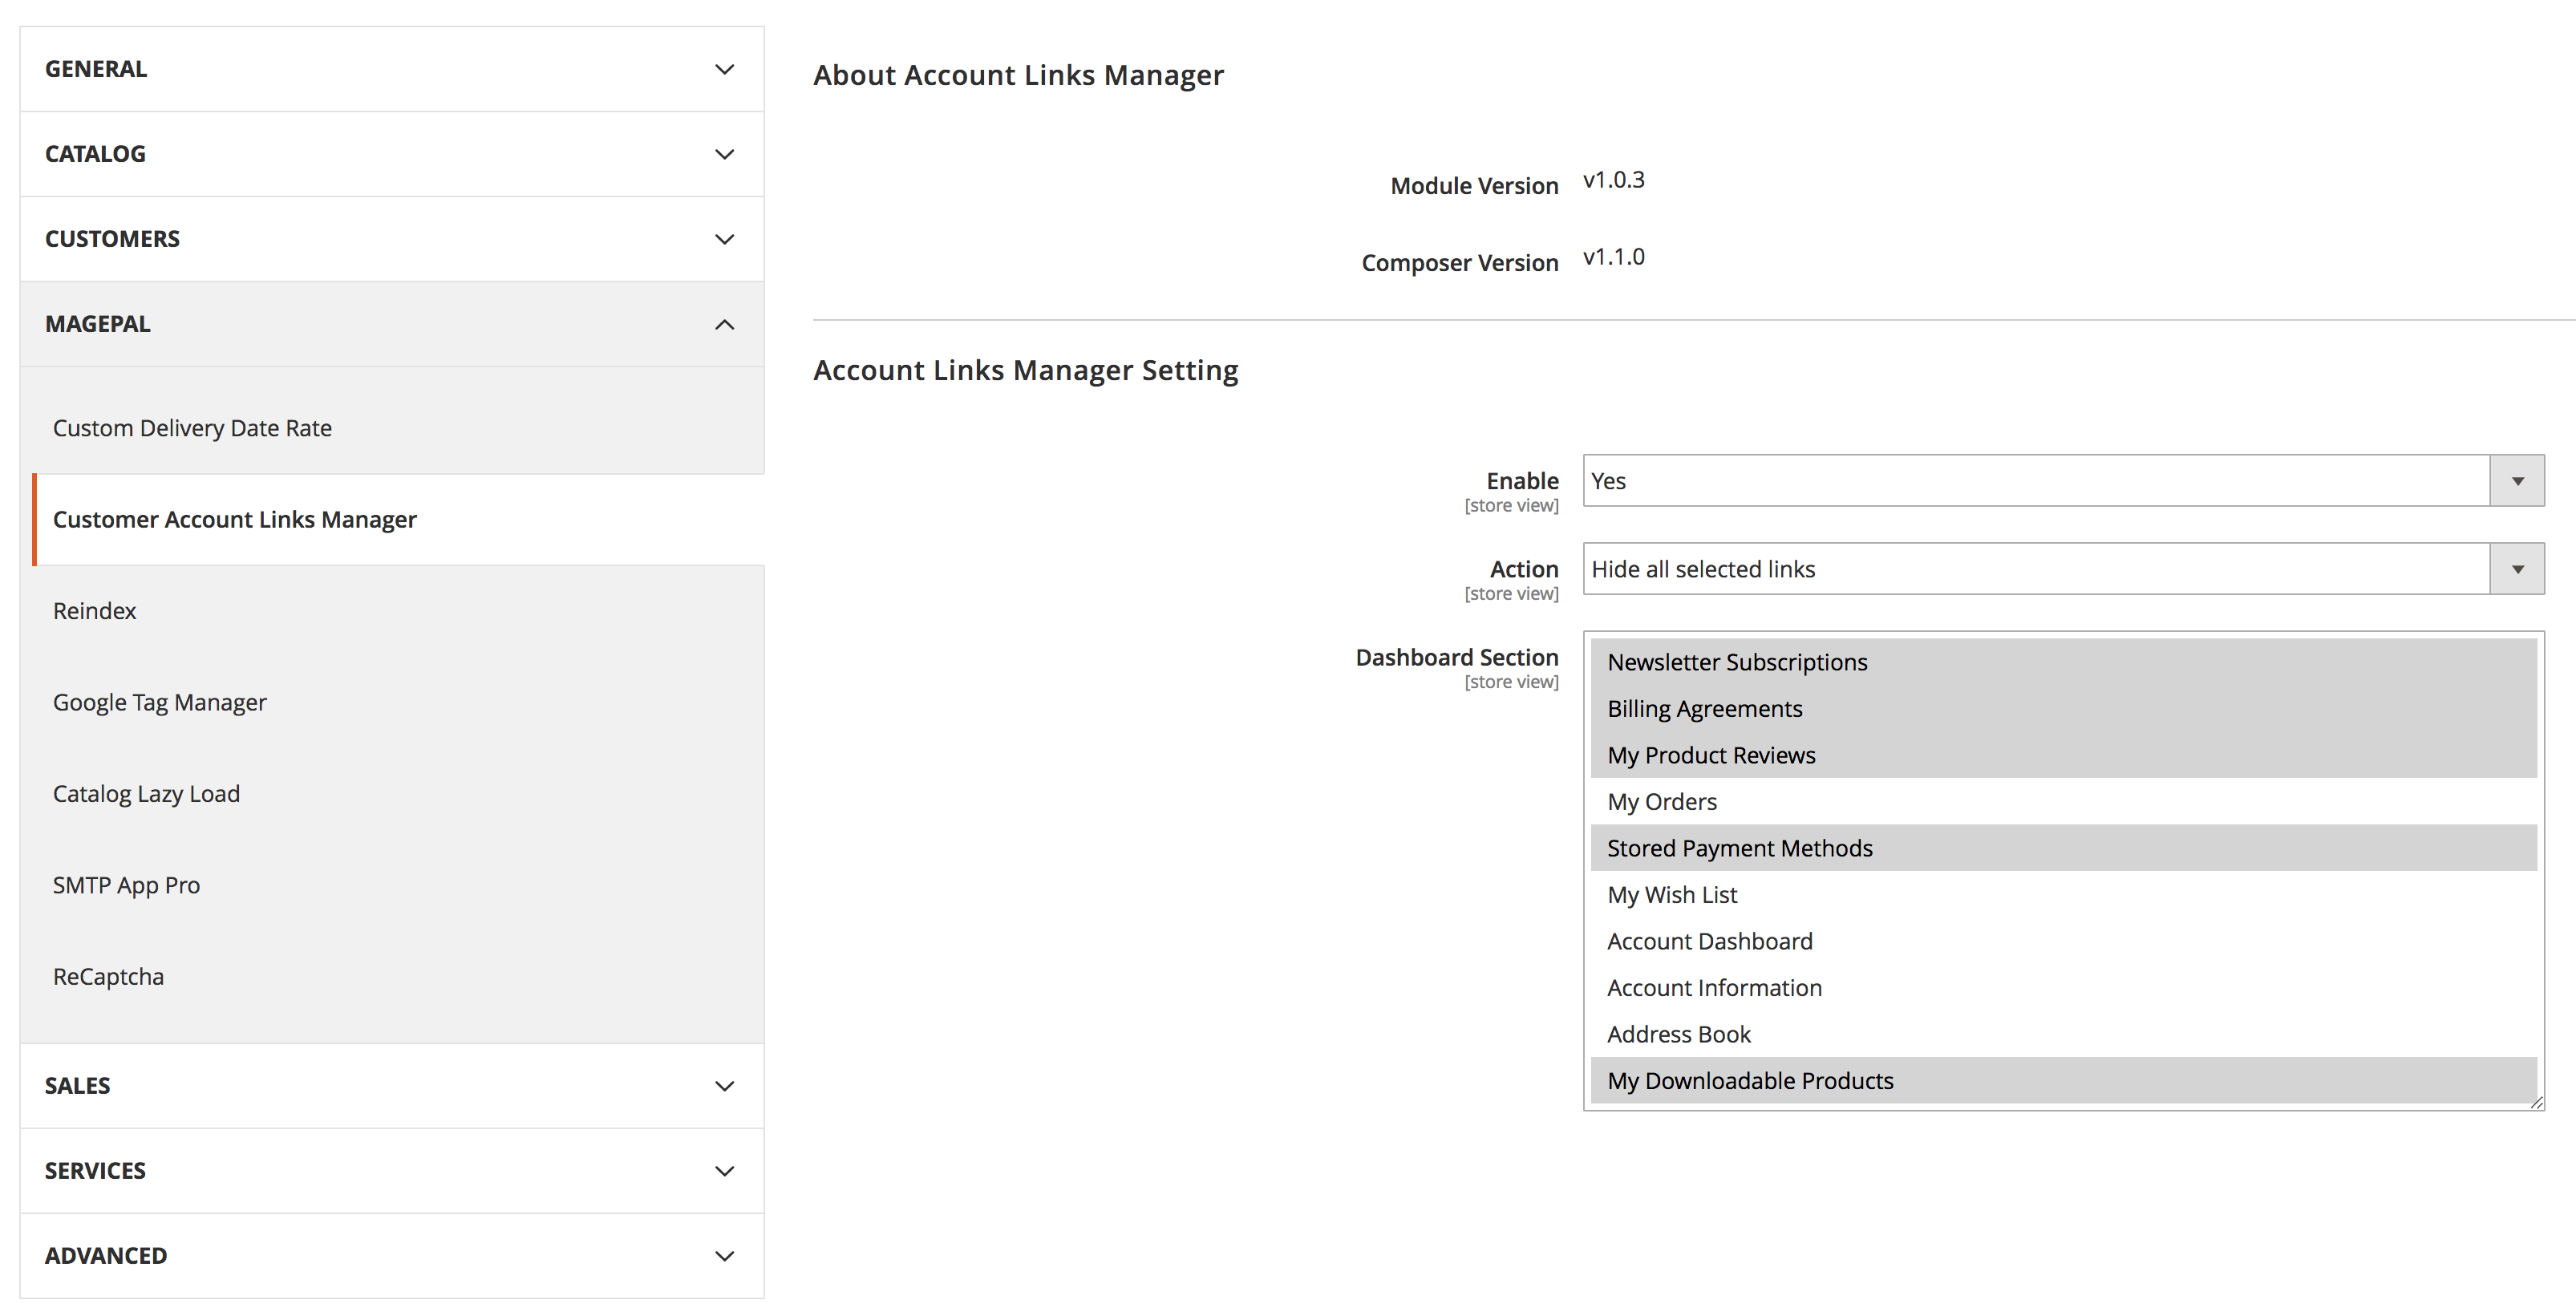 Customer Account Links Manager for Magento2